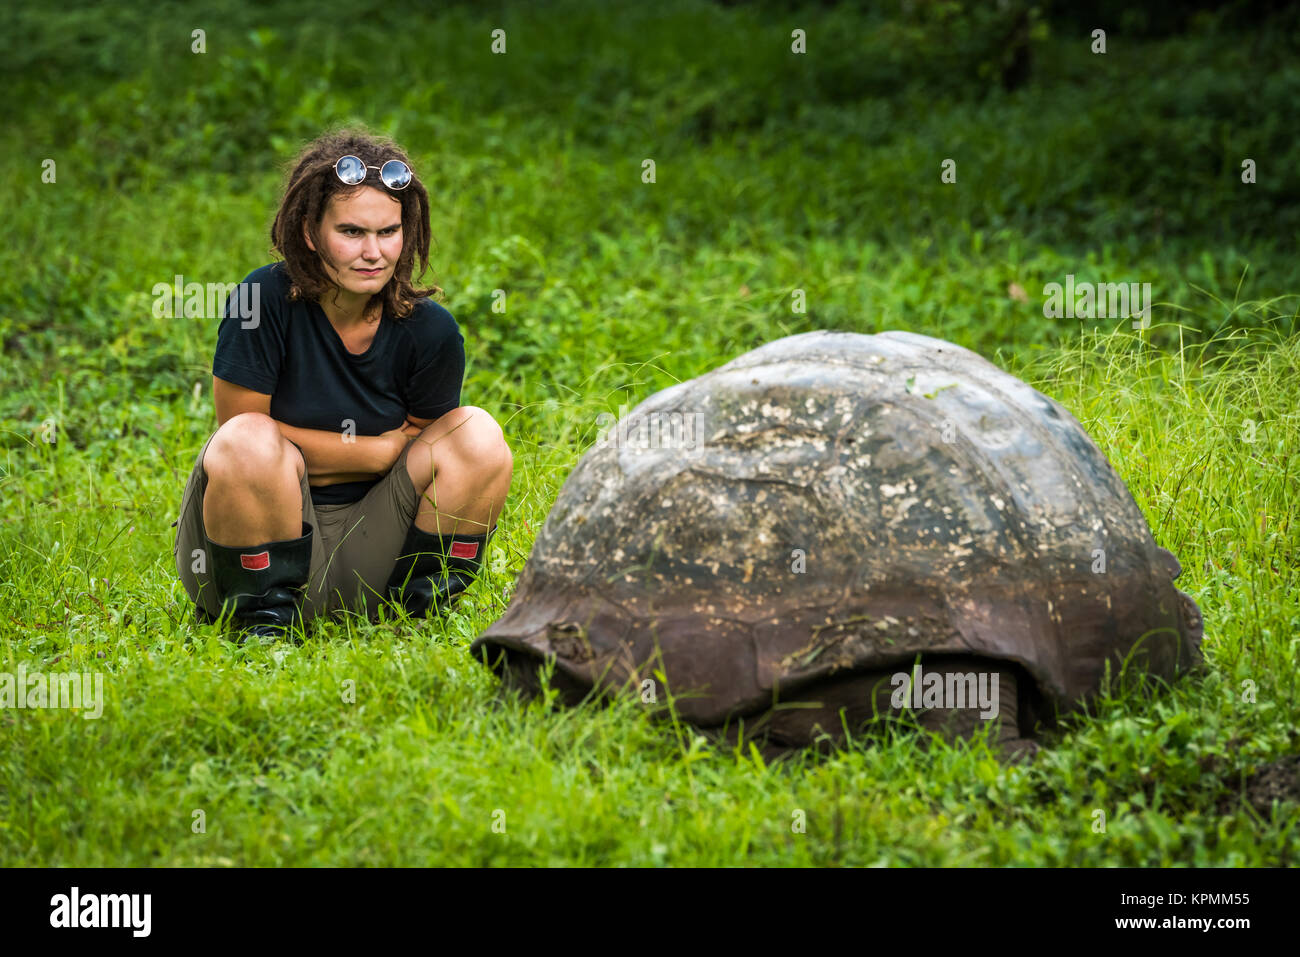 Woman staring intently at Galapagos giant tortoise - Stock Image